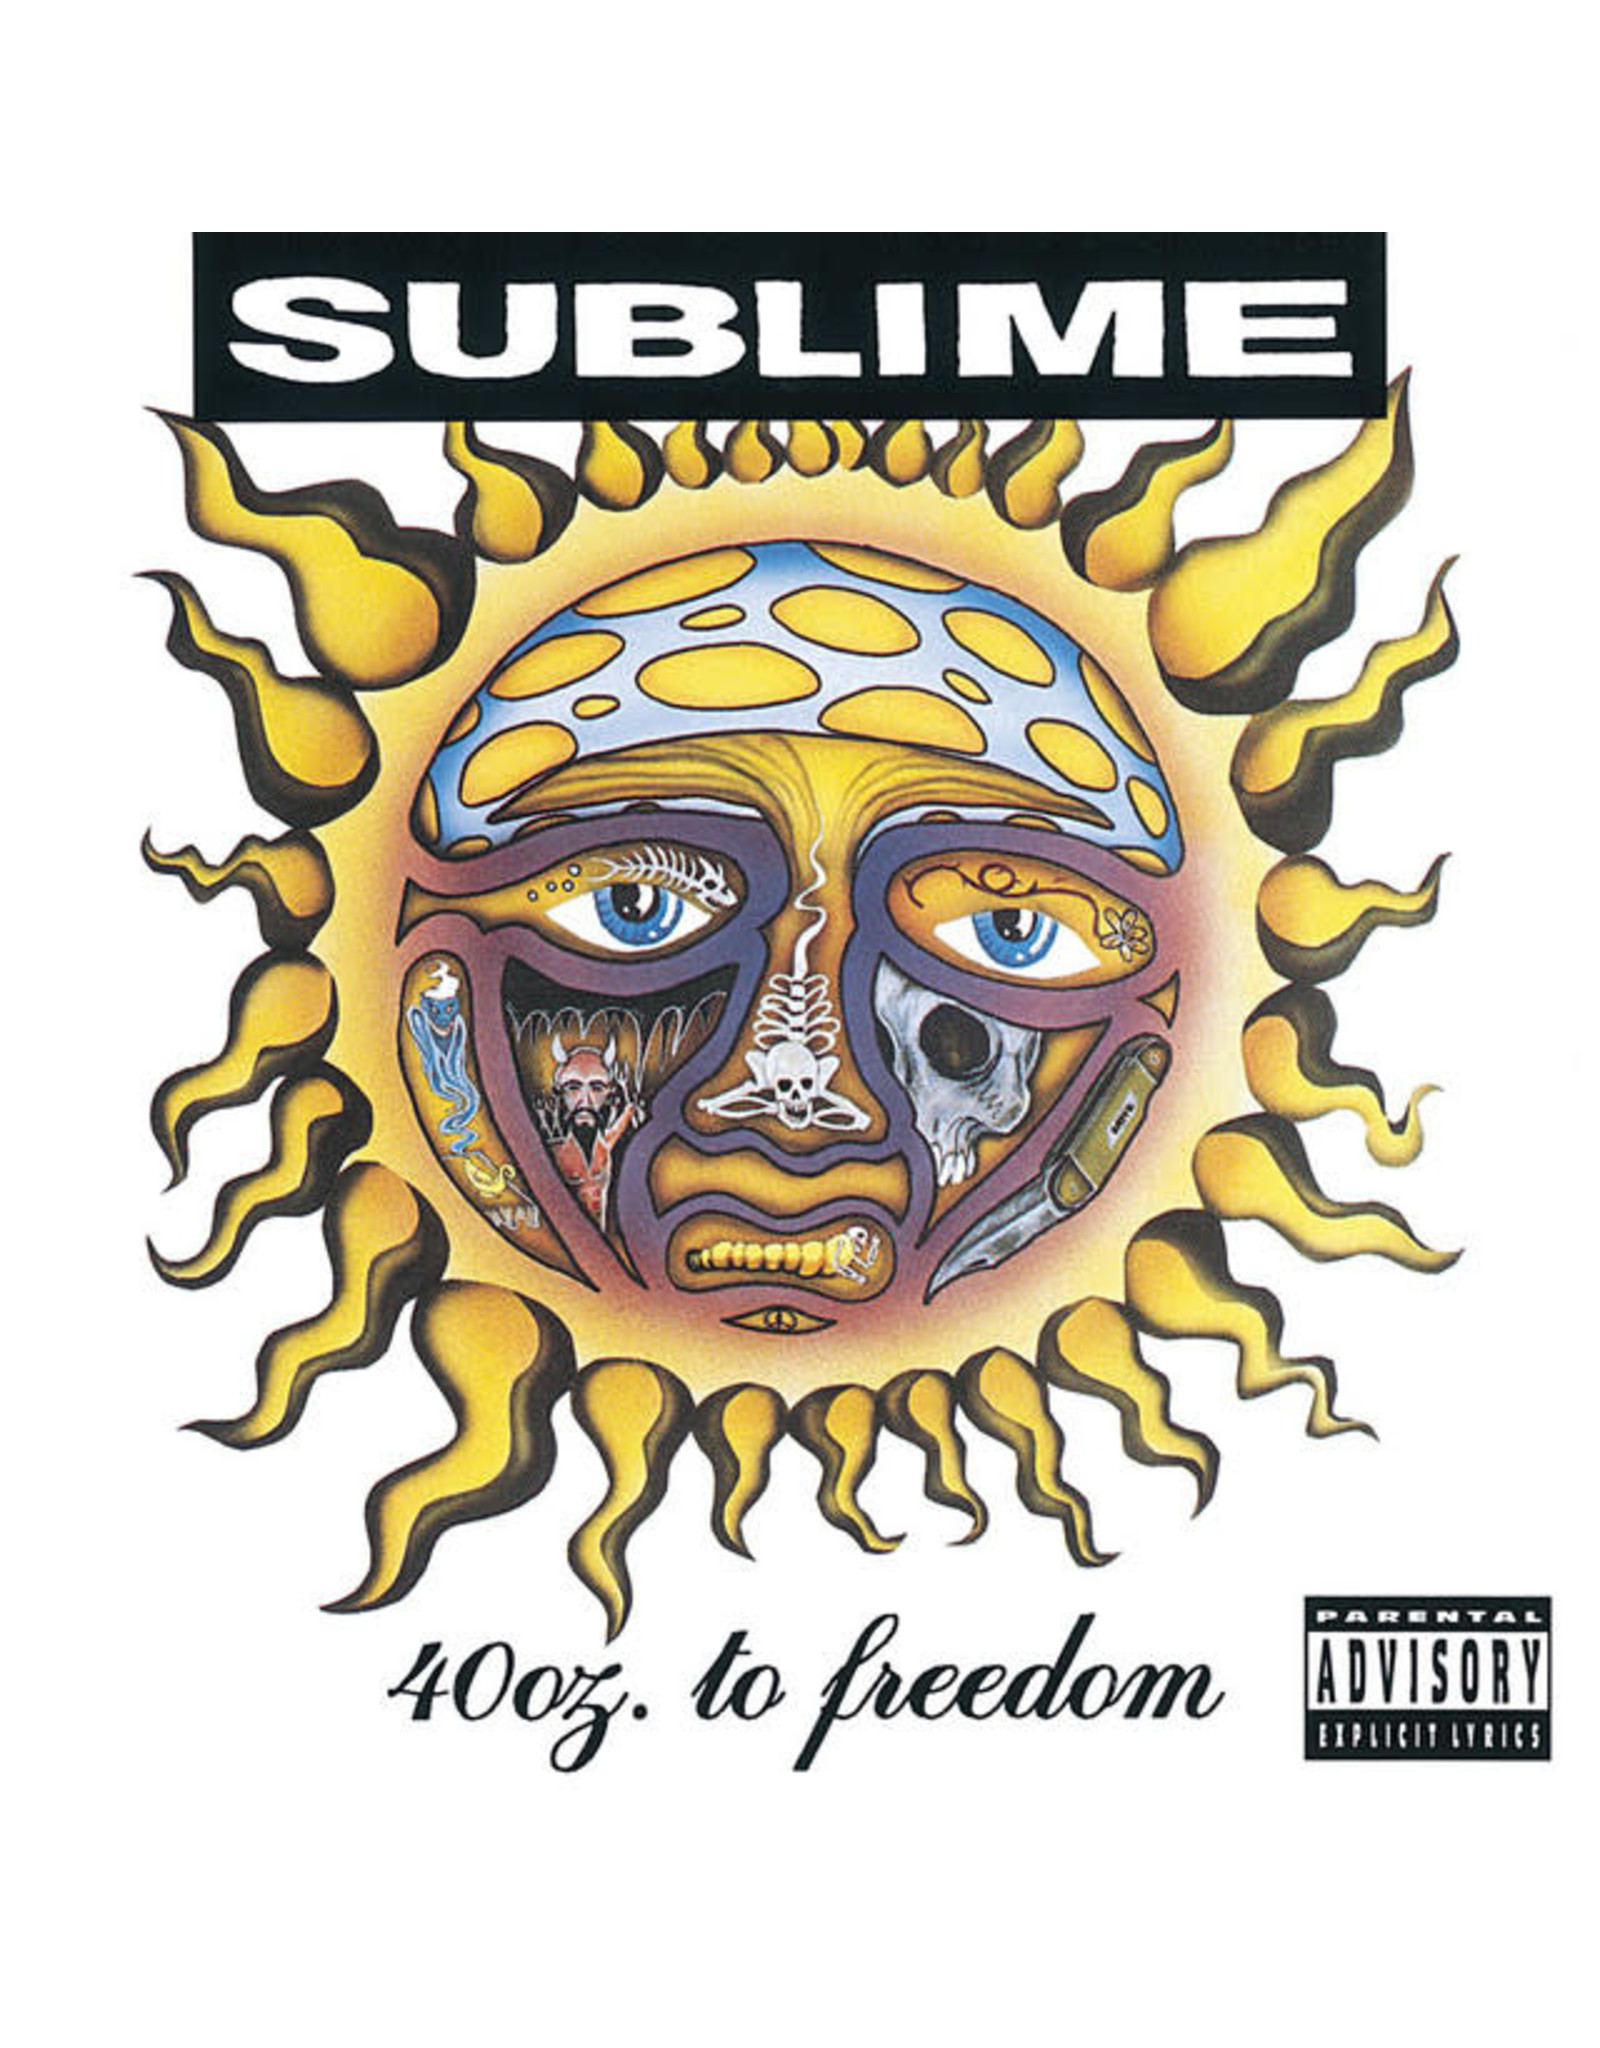 Vinyl Sublime - 40 oz. to Freedom